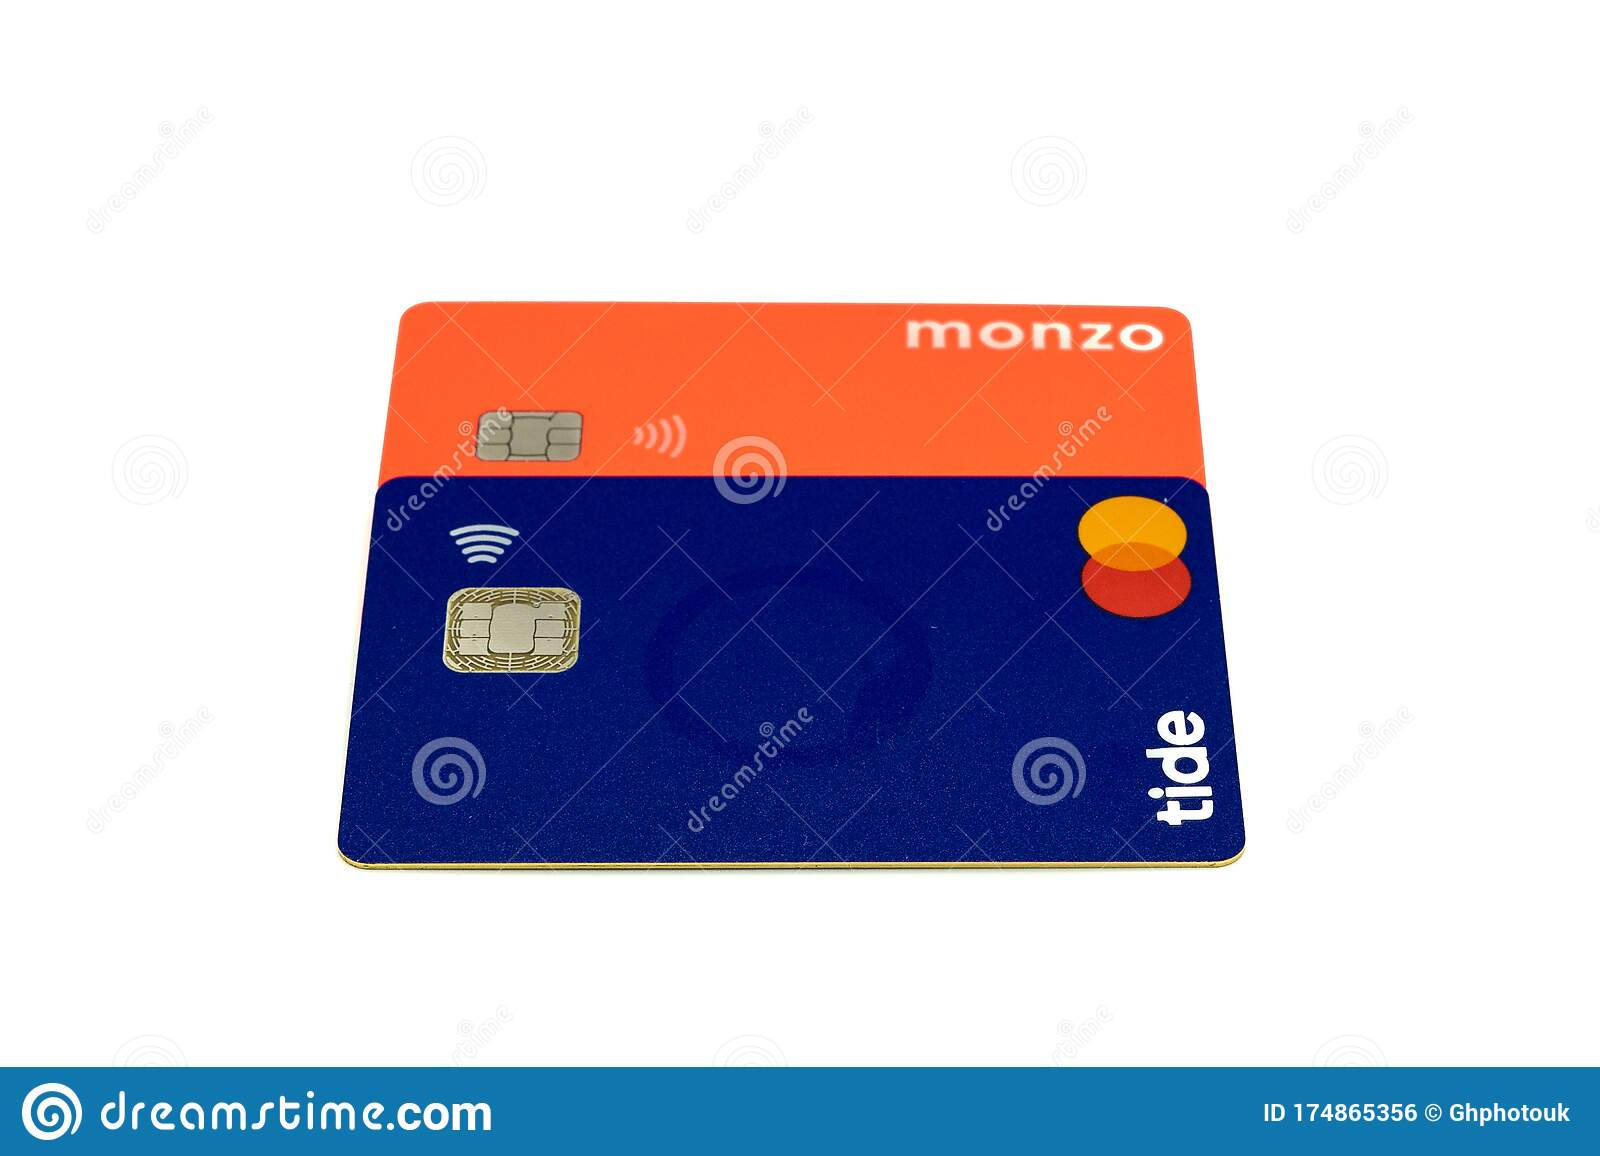 03 04 2020 Portsmouth Hampshire Uk Two Debit Cards From Online Banks On For Tide Bank And One For Monzo Bank Editorial Photo Image Of Banks Mastercard 174865356